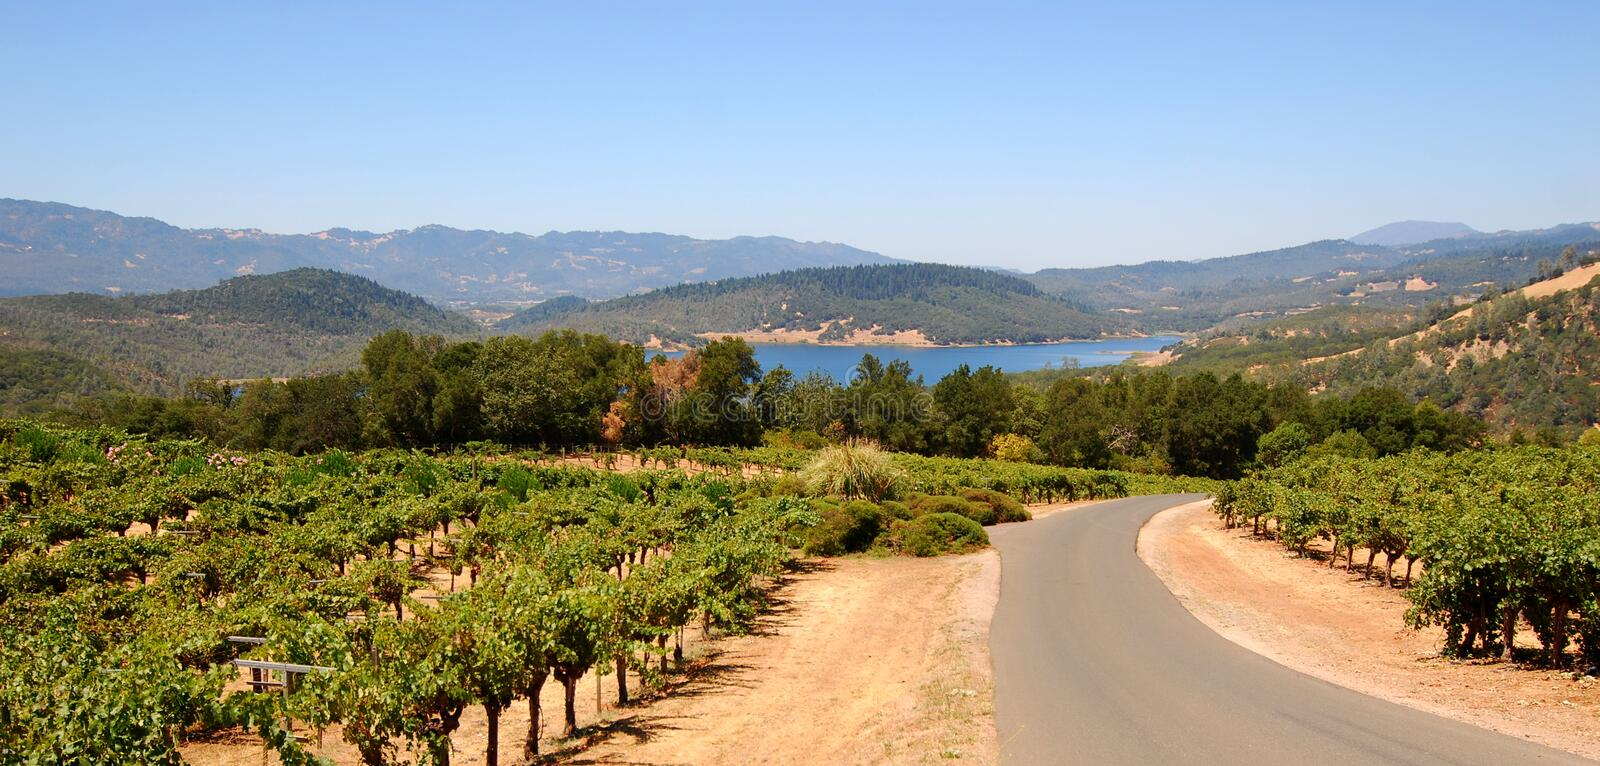 Napa Valley Vines and Mountains royalty free stock photos